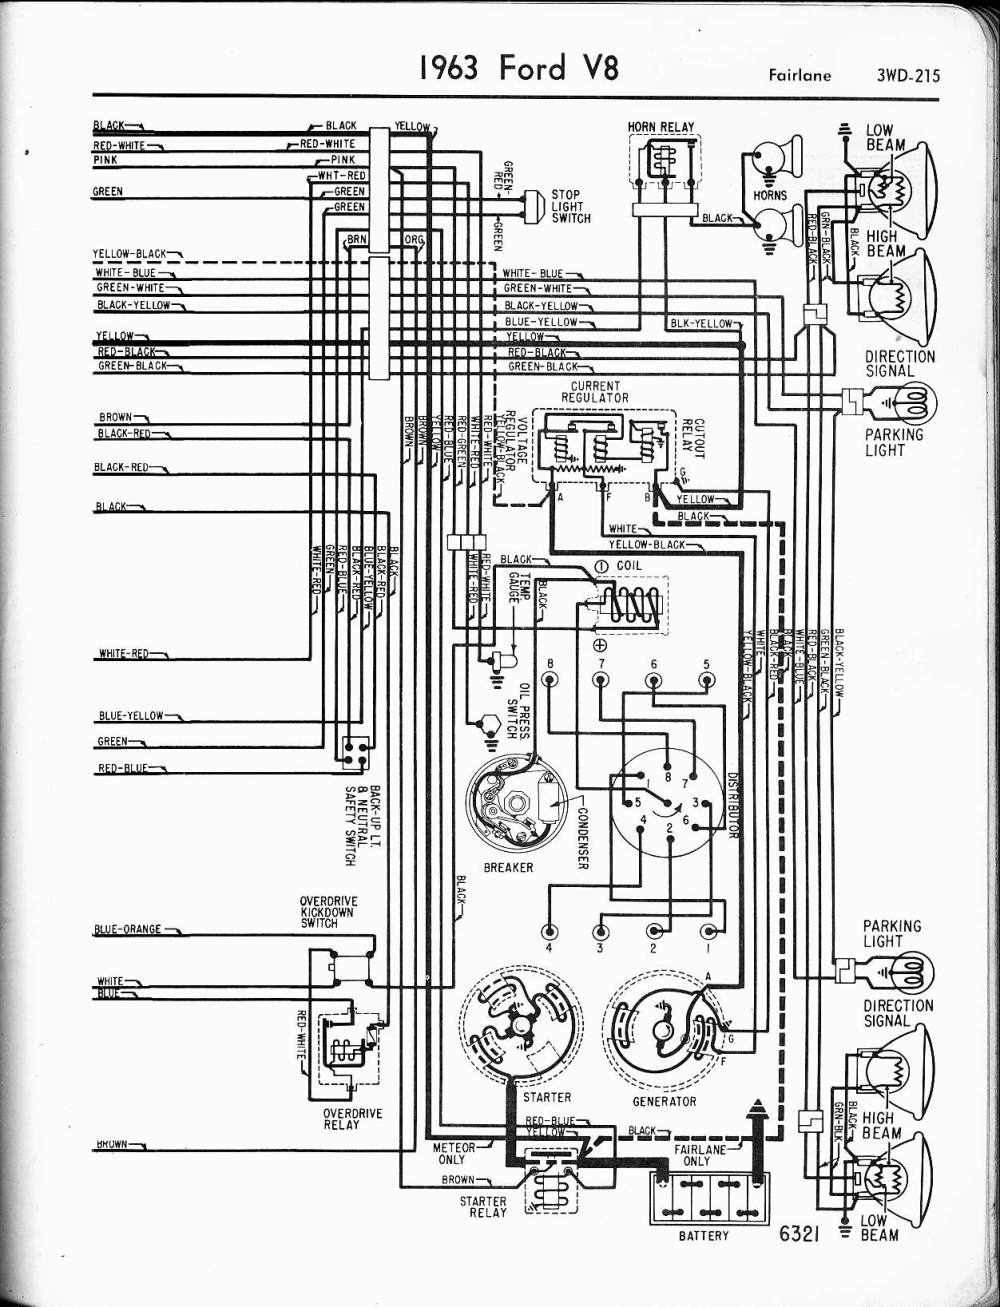 medium resolution of 1963 ford fairlane wiring diagram wiring diagram third level 1967 camaro wiring diagram 1962 ford fairlane wiring diagram